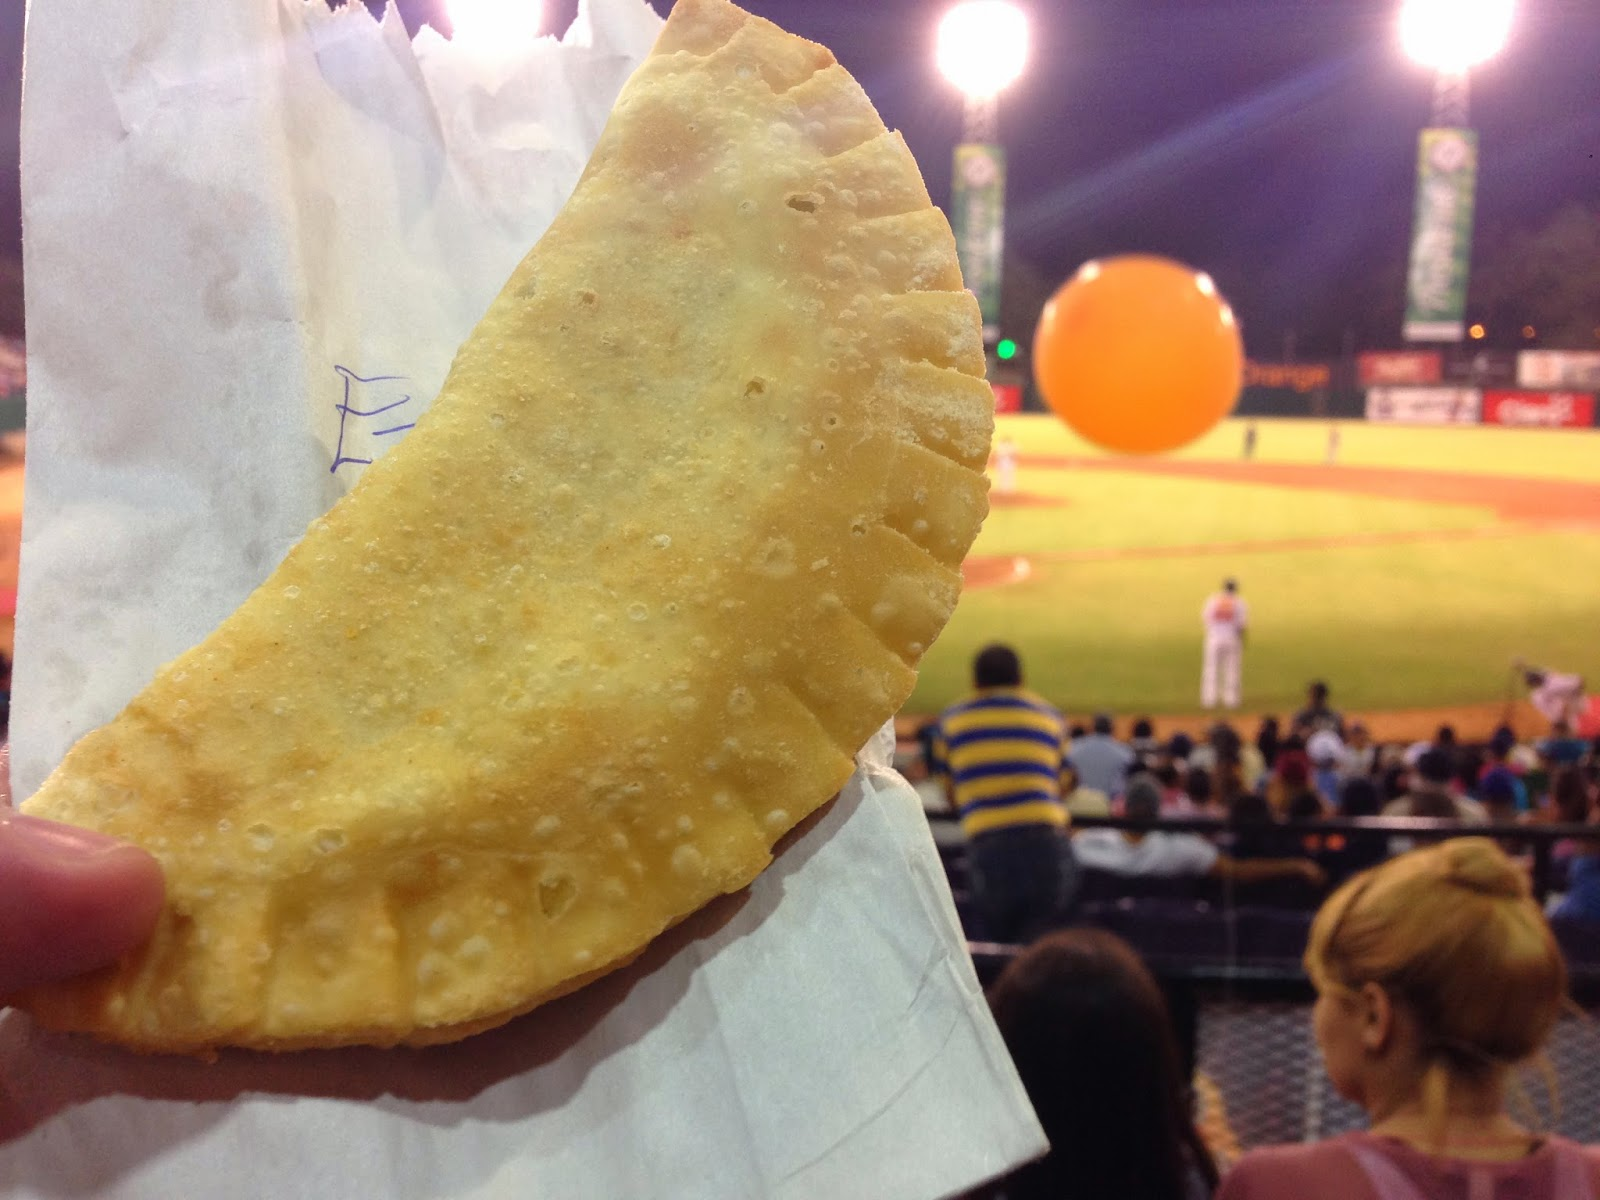 Empanadas at a baseball game